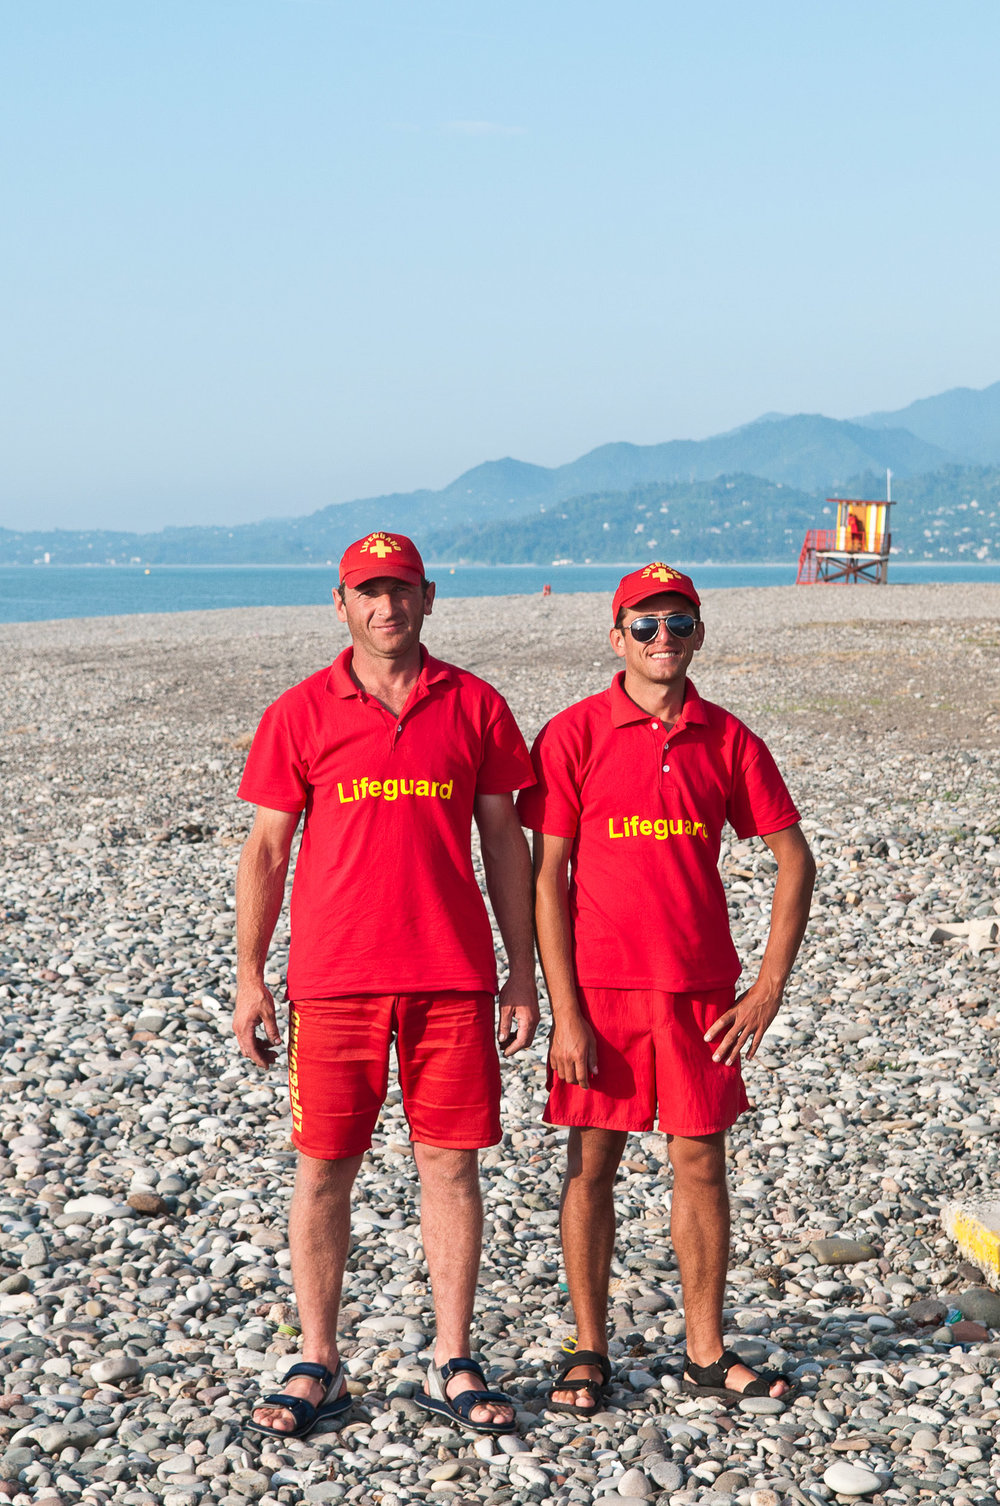 Lifeguard's on the beach at Batumi, Georgia.